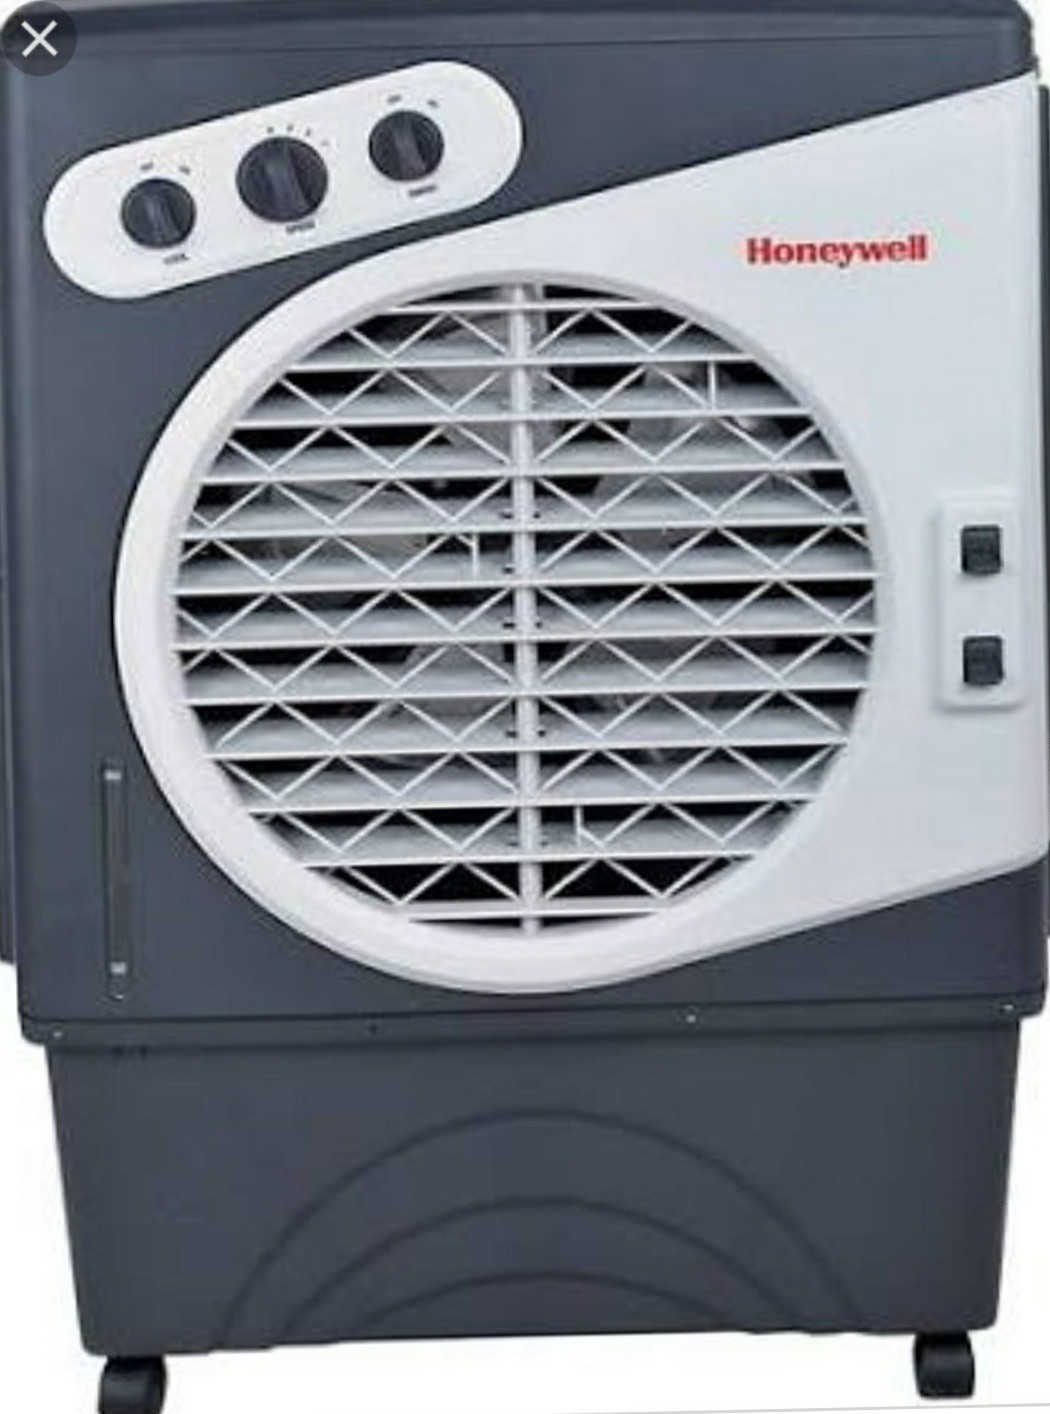 Honeywell 60 Room Air Cooler Image